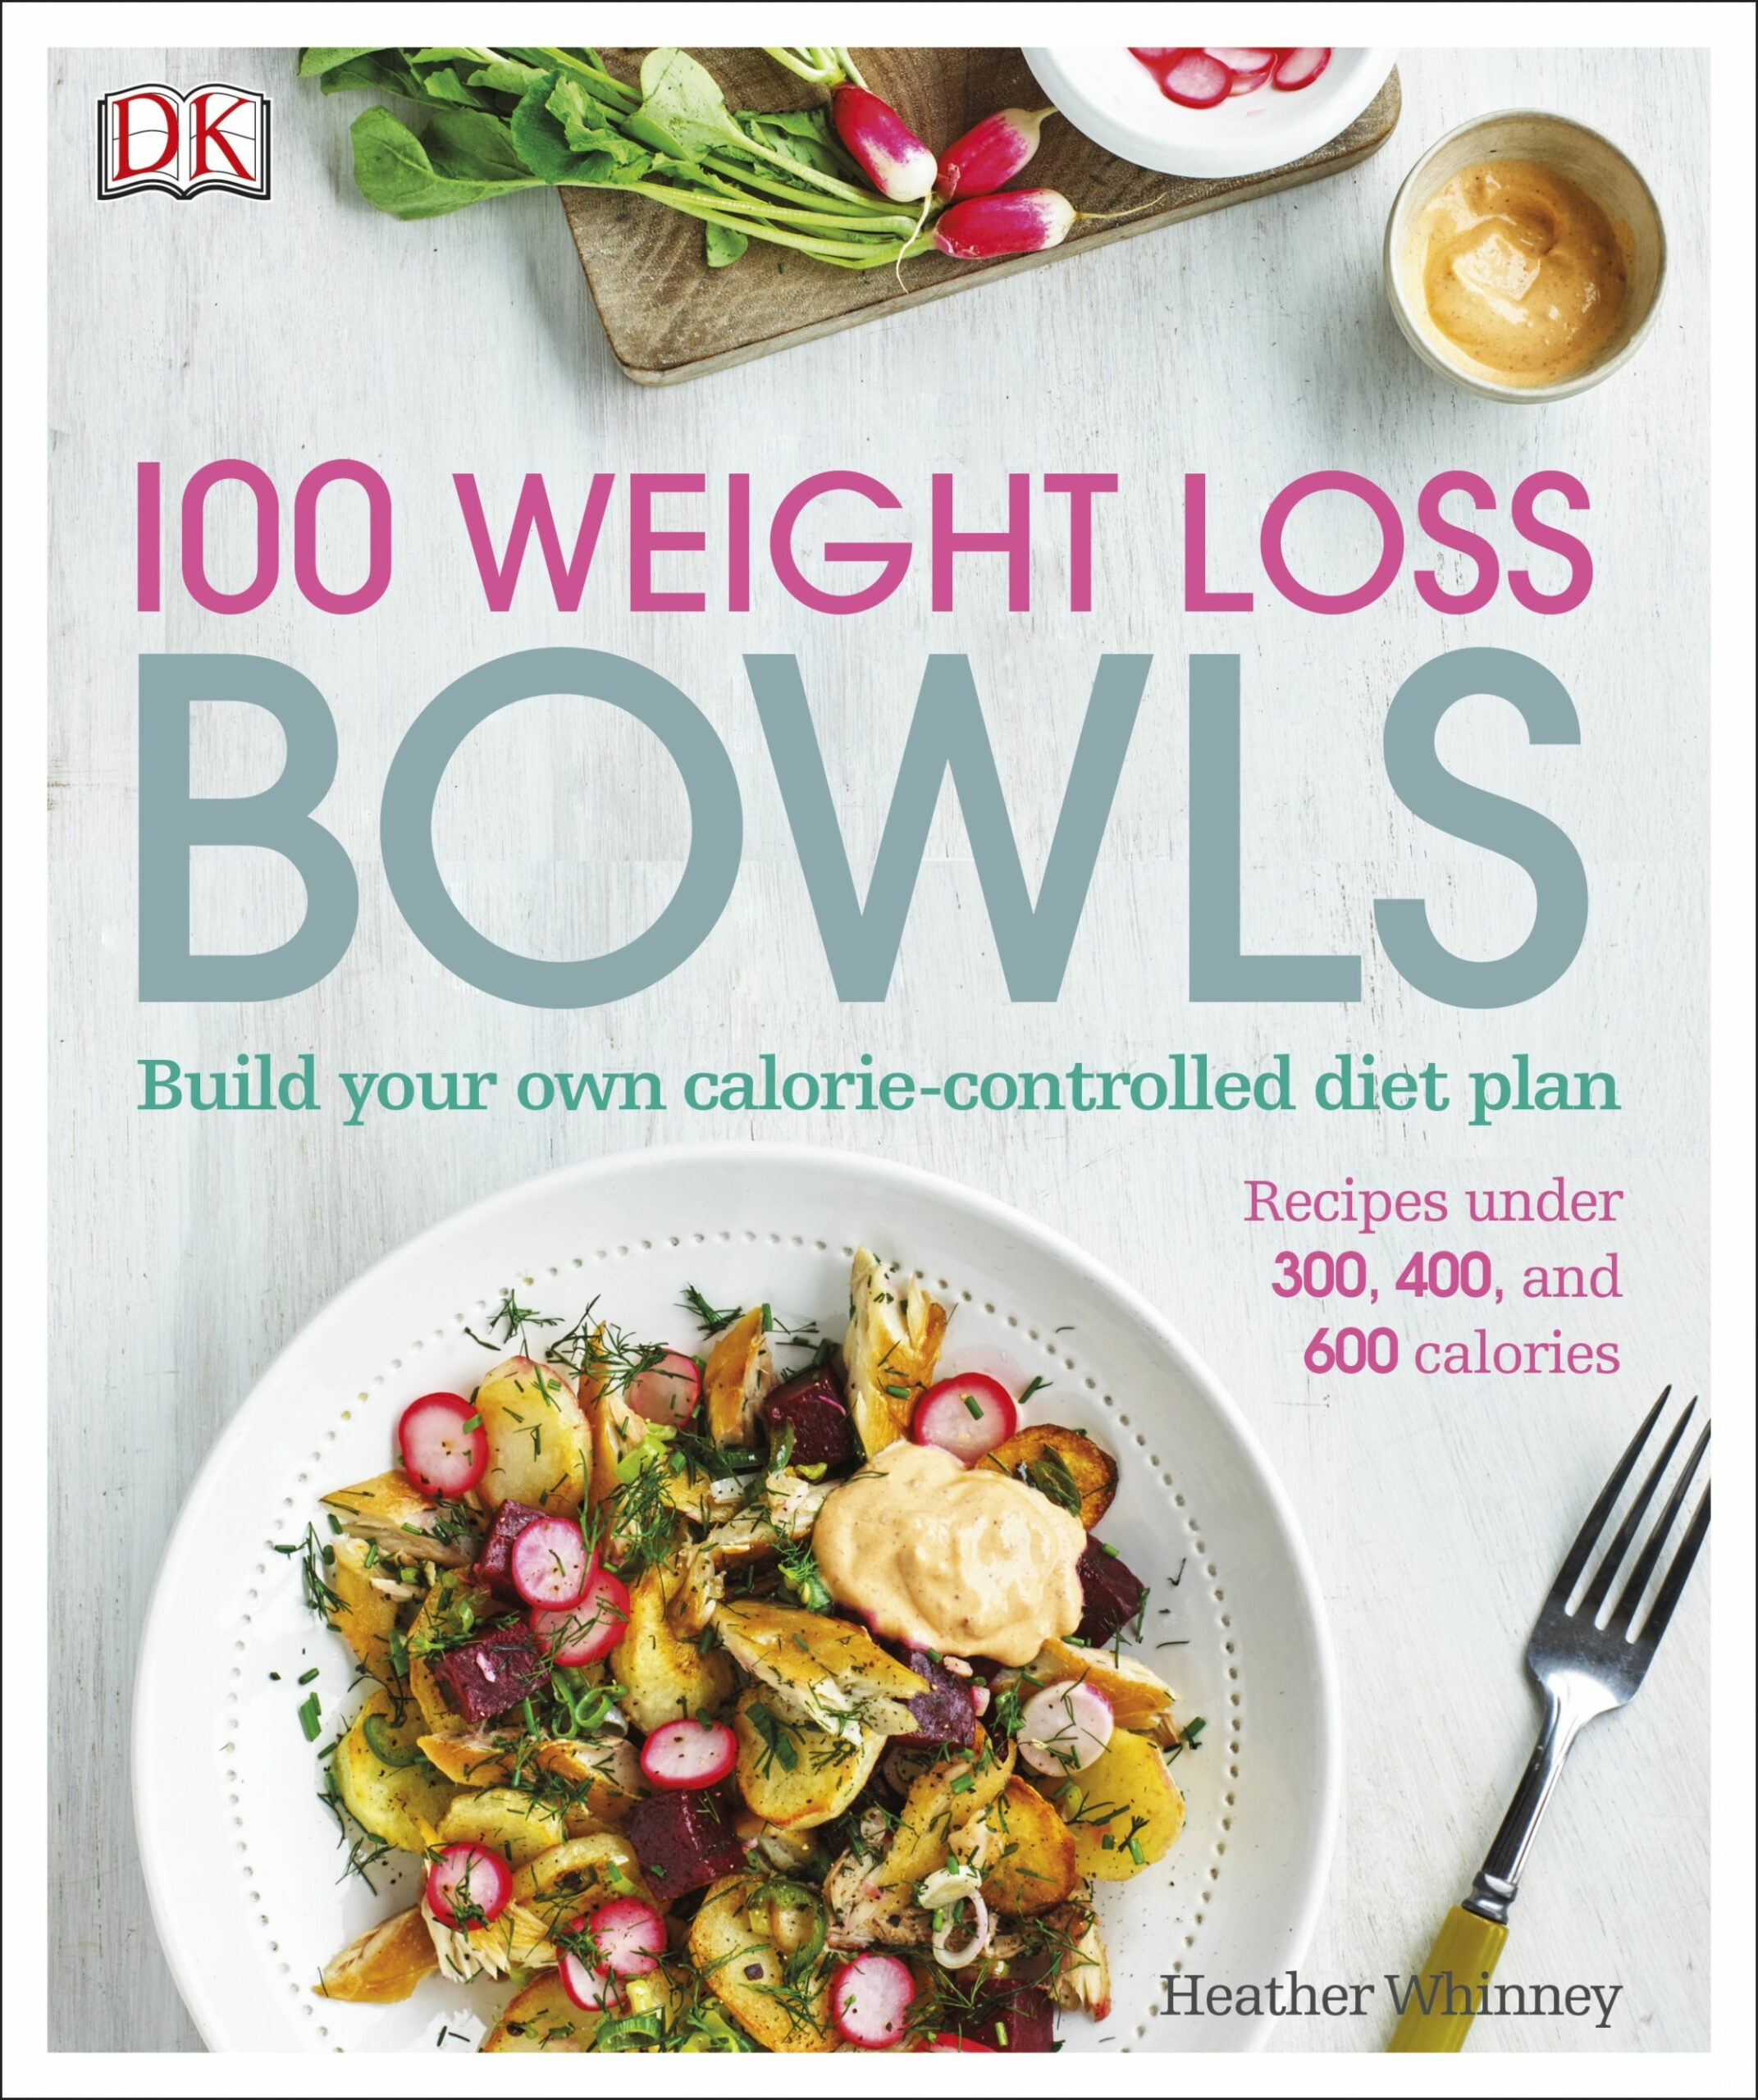 11 Weight Loss Bowls by DK - Penguin Books New Zealand - Recipes For Weight Loss Nz